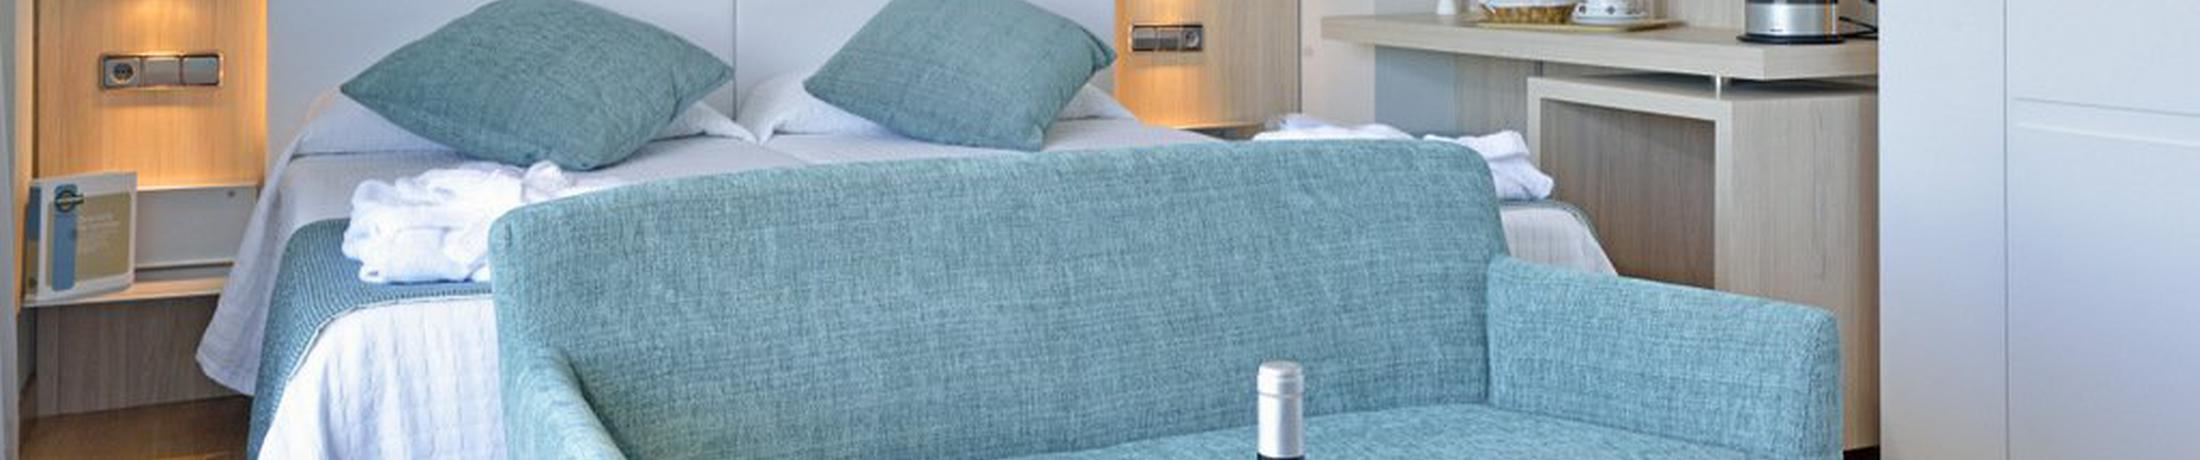 Rooms Alua Hawaii Ibiza Hotel San Antonio